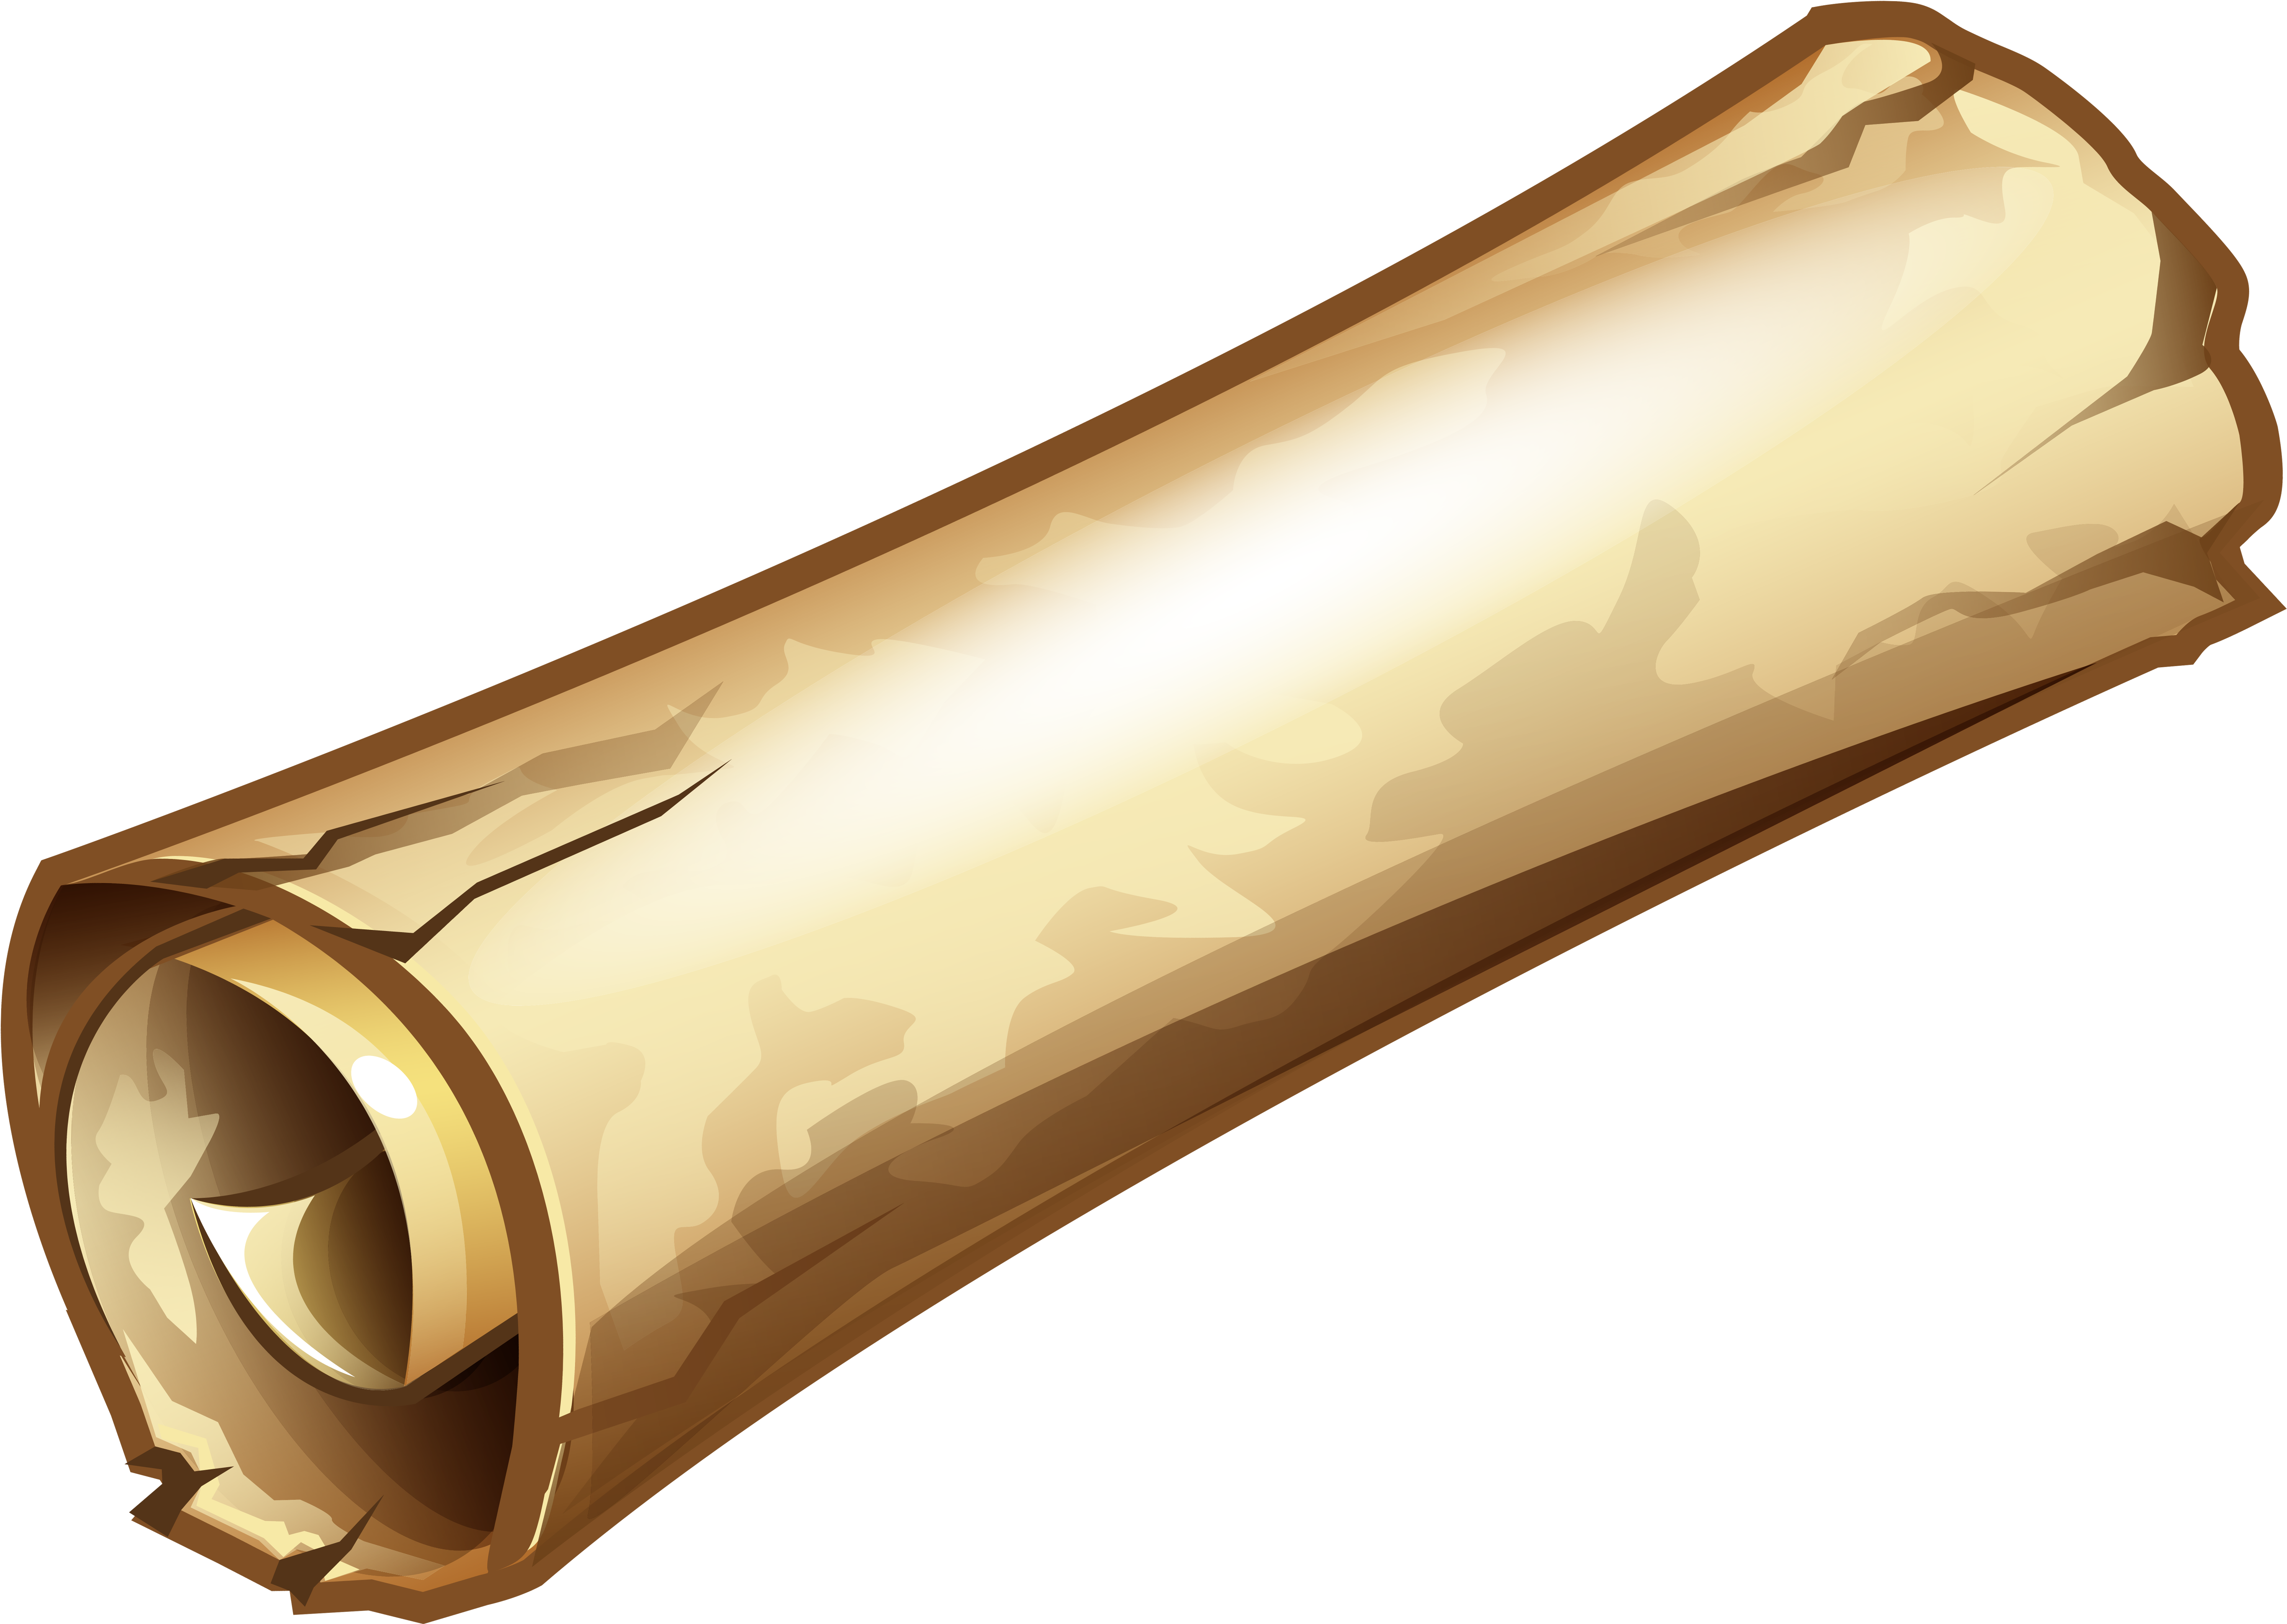 21-210908_old-scroll-png-clipart-image-scrolls-png.png